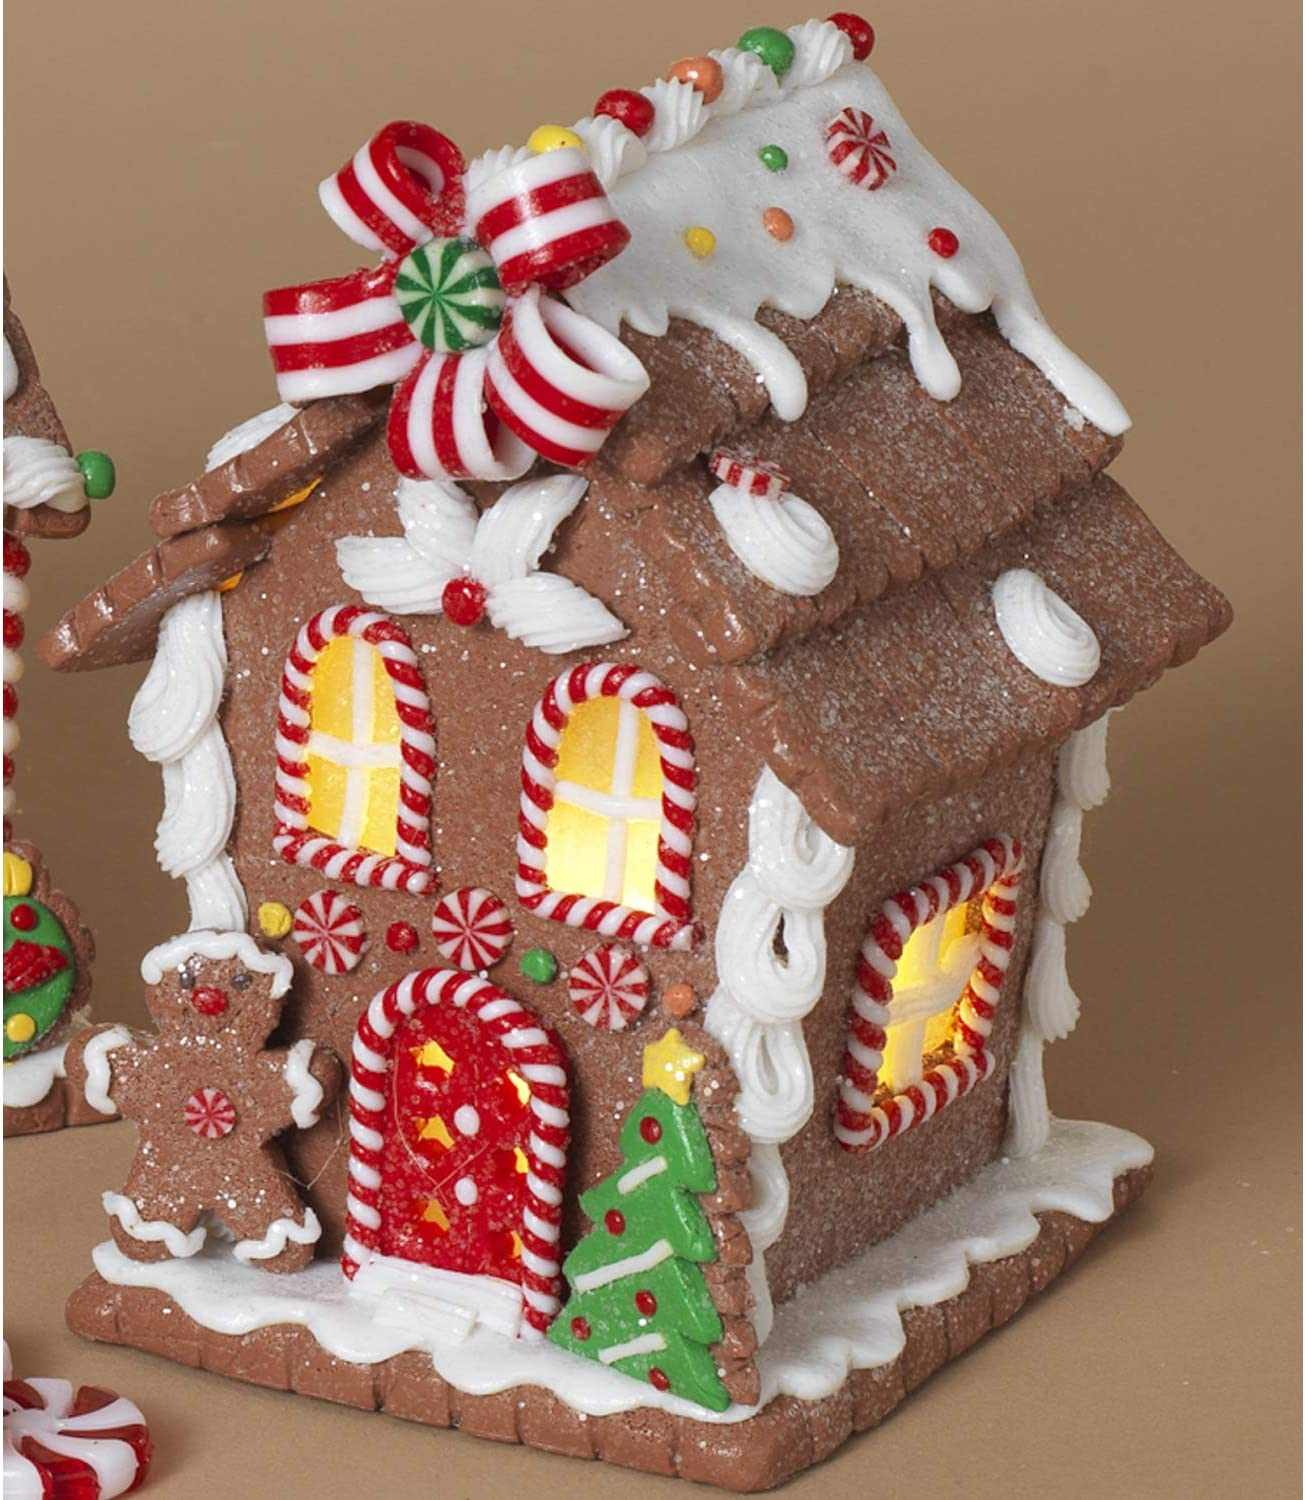 Christmas Village Home Decor 5.5-Inch Lighted Miniature Christmas Santa Gingerbread House with Candy Accents Holiday Light Up Tabletop Decoration